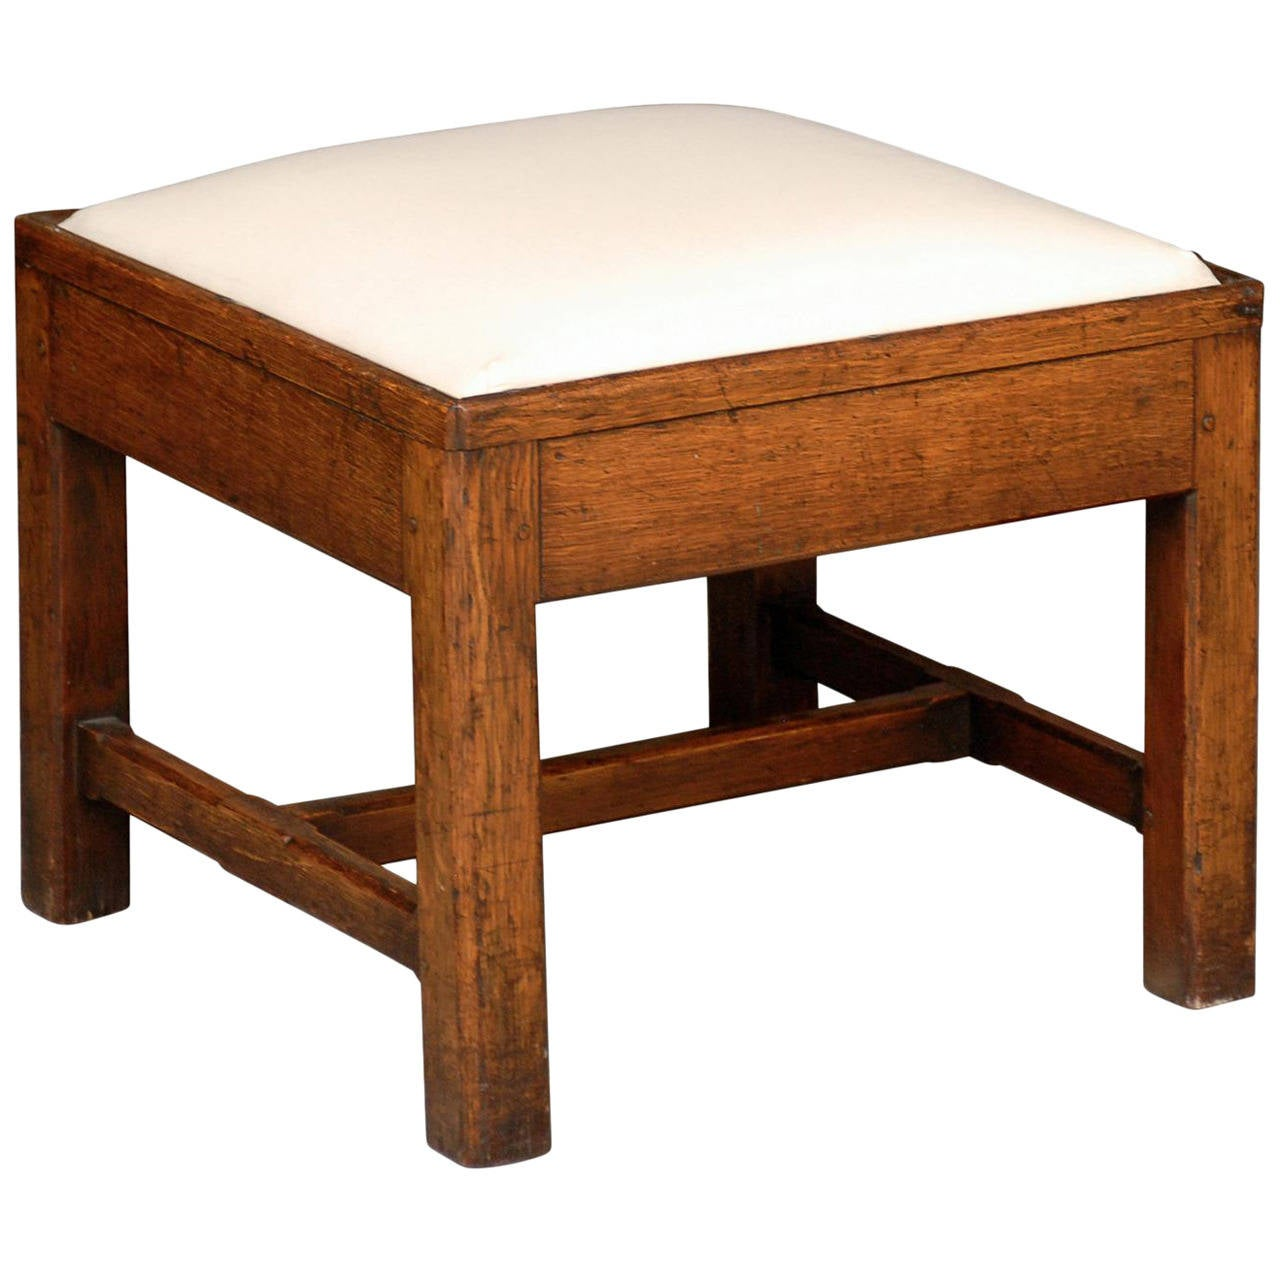 English Late 19th Century Oak Square Stool With